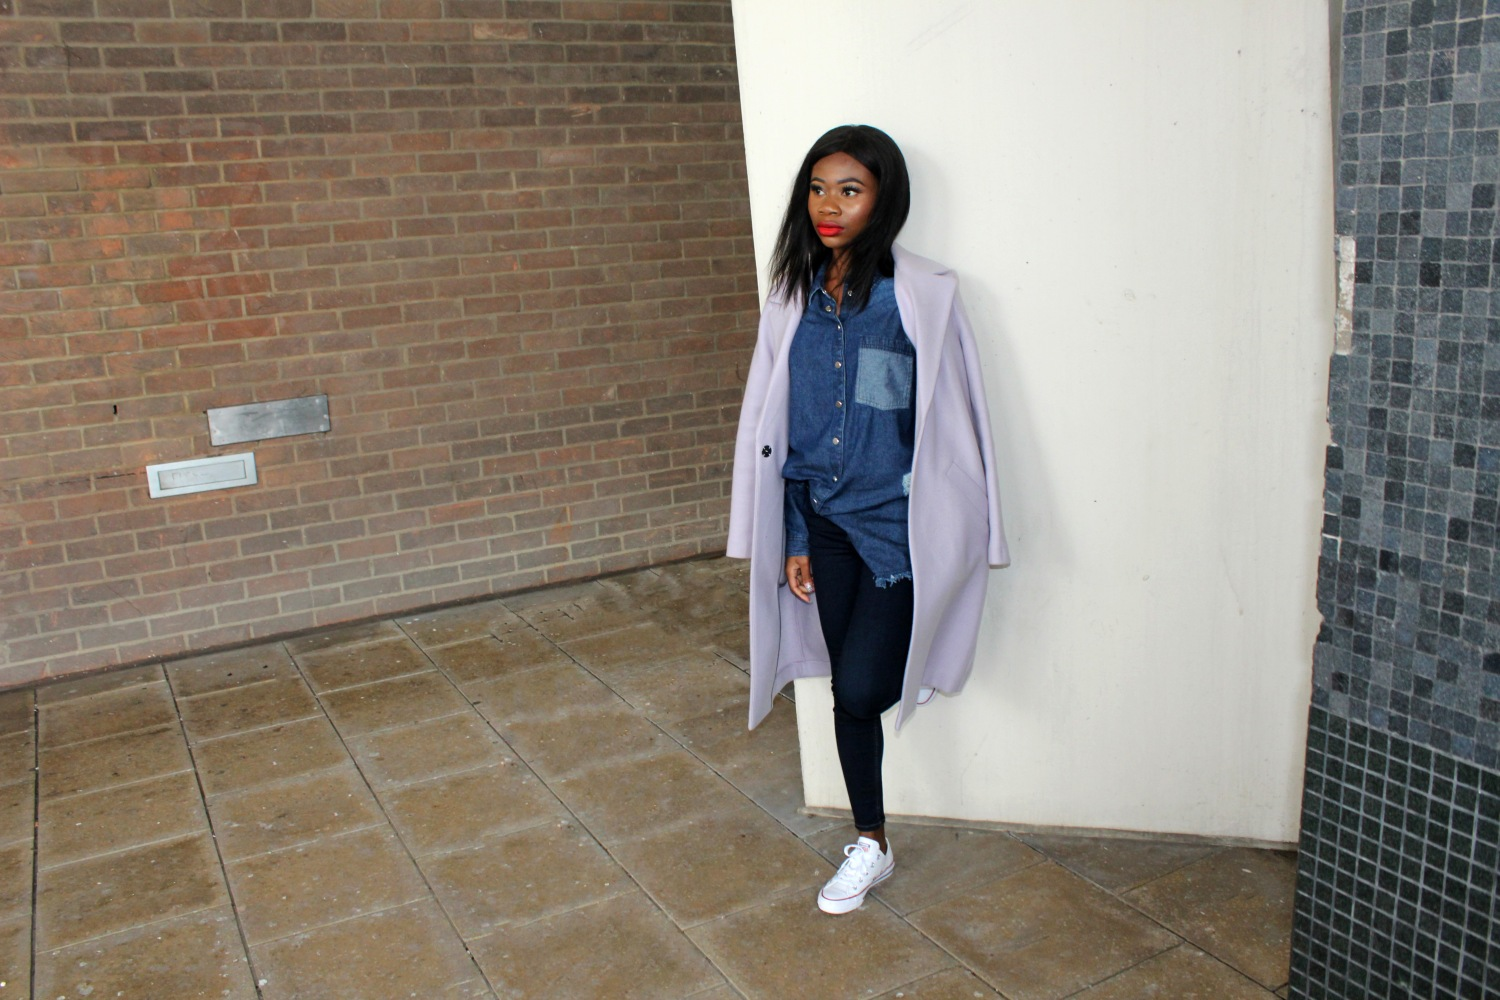 Outfit Ideas To Try From Instagram This Week, Outfit Inspiration, Outfit Ideas, Fall Fashion, Fashion, Street Style, Fashion Forward Fall, Style Inspiration, A/W buys, A/W wardrobe outfit, Canvas, River Island , Lilac Coat, How To Style, Denim on Demin, Long Coat, Red Lipstick, Petite Style Blogger, London Style blogger,